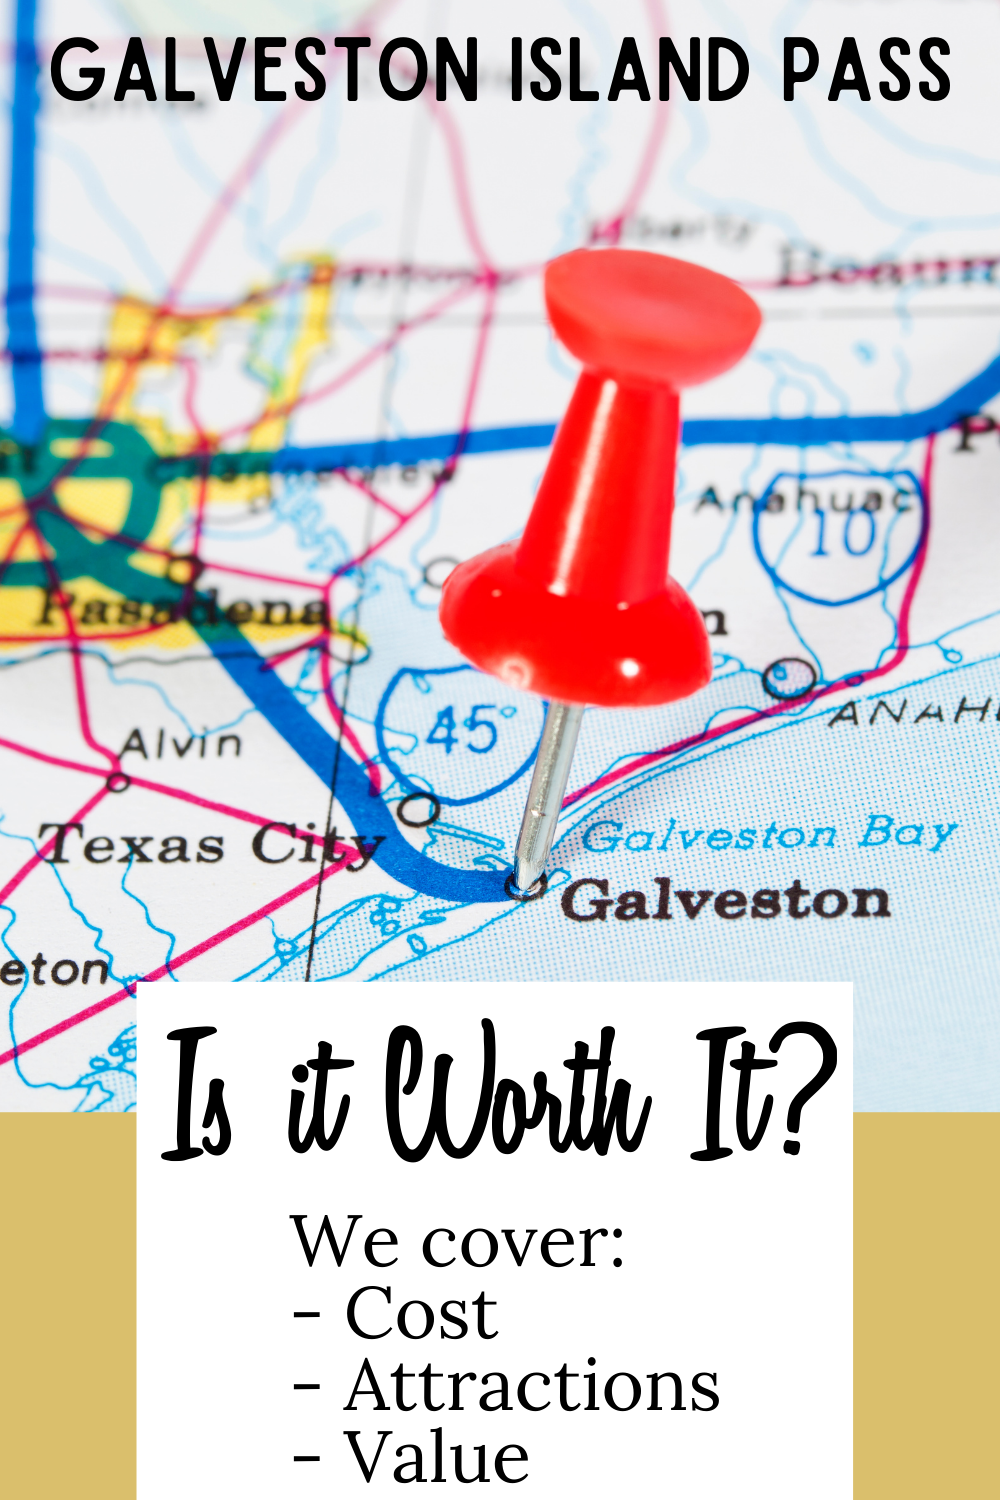 red pushpin in a map of Texas pointing to Galveston Island text reads Galveston Island Pass Is it worth it? We cover cost, attractions and value.